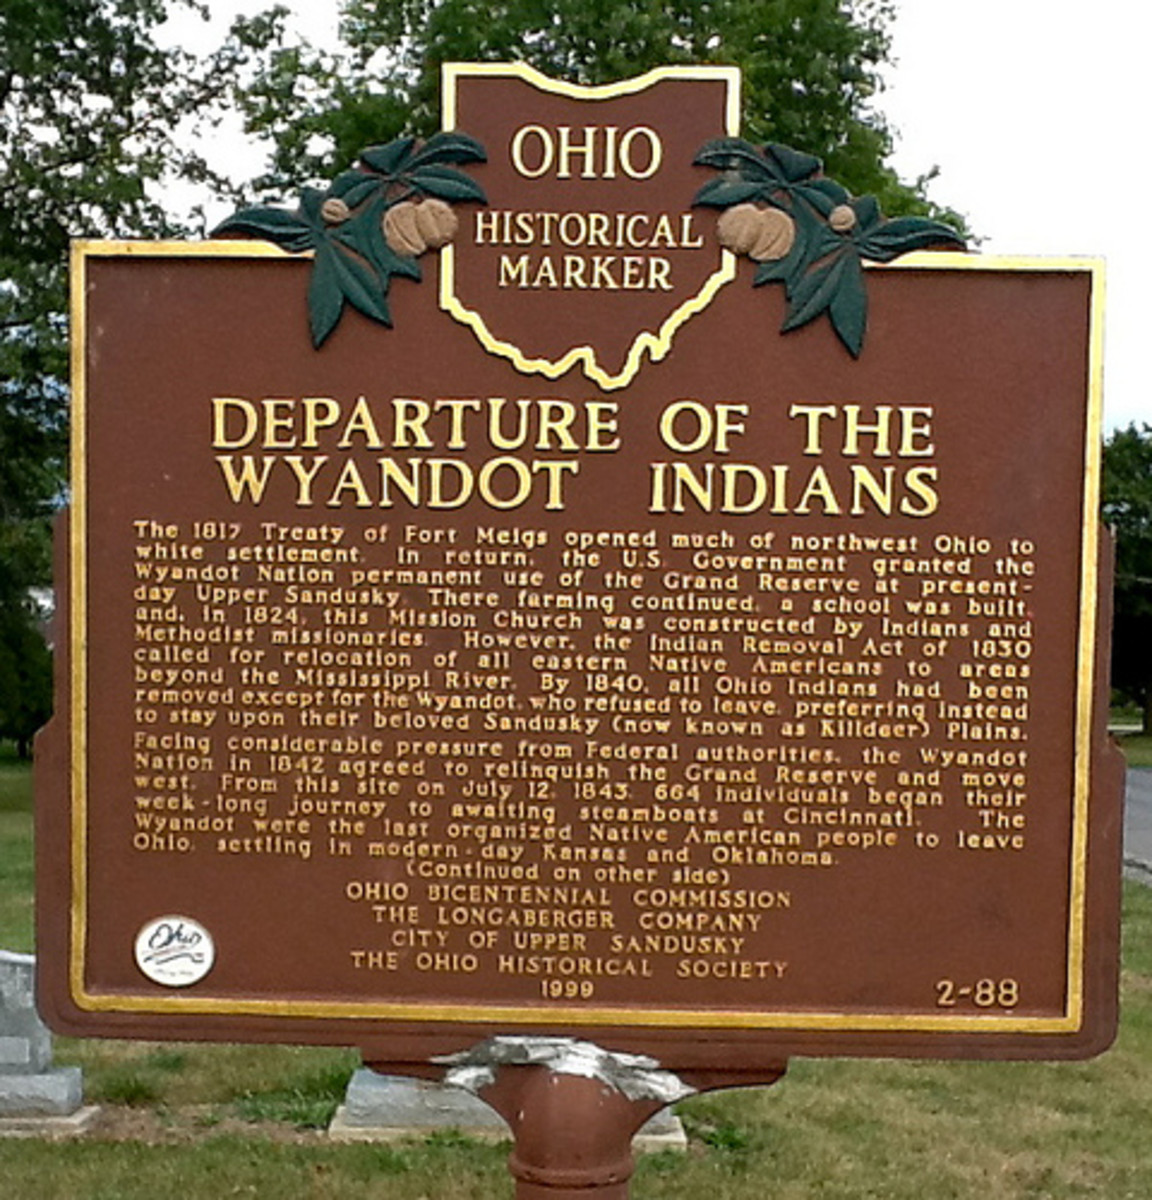 Native Americans: Wyandotte Nation History - Forced Out Or Paid To Leave Ohio?